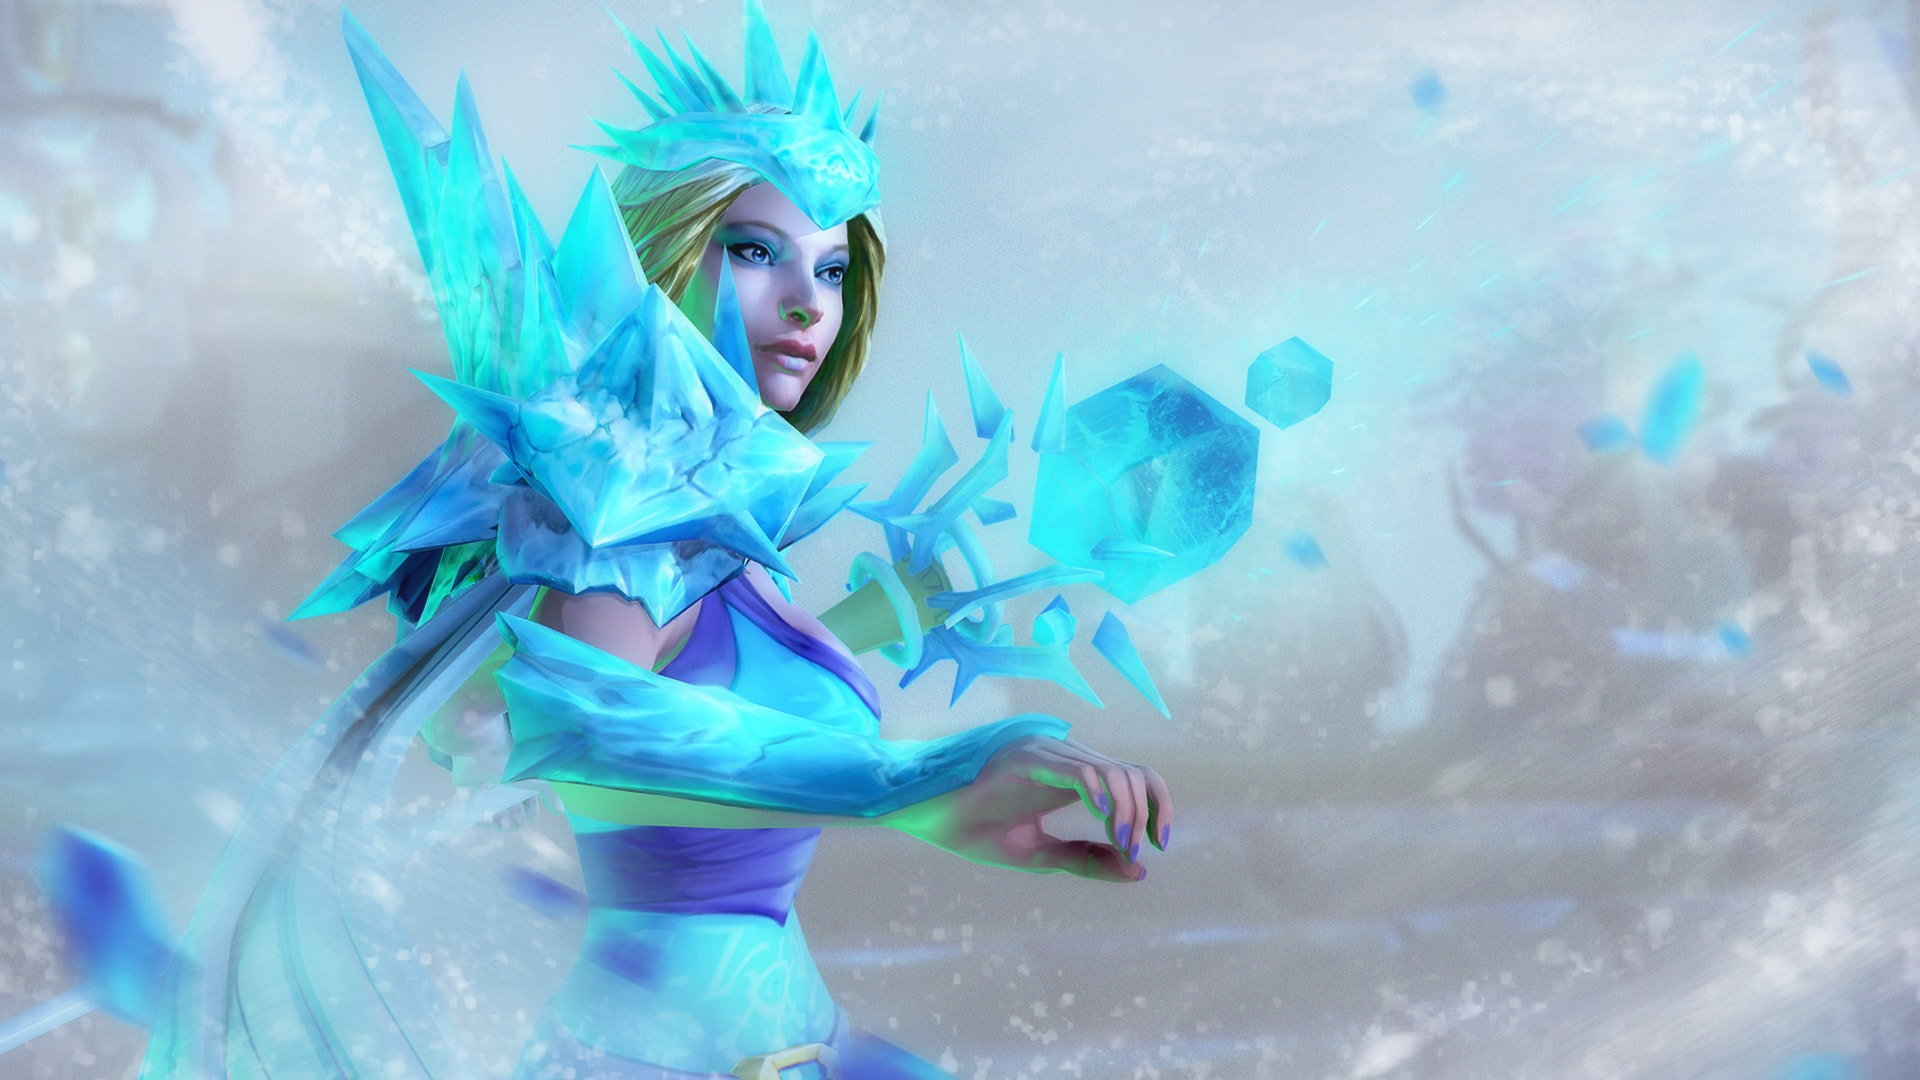 Crystal Maiden Wallpapers Dota2 - Dota 2 Crystal Maiden Hd , HD Wallpaper & Backgrounds